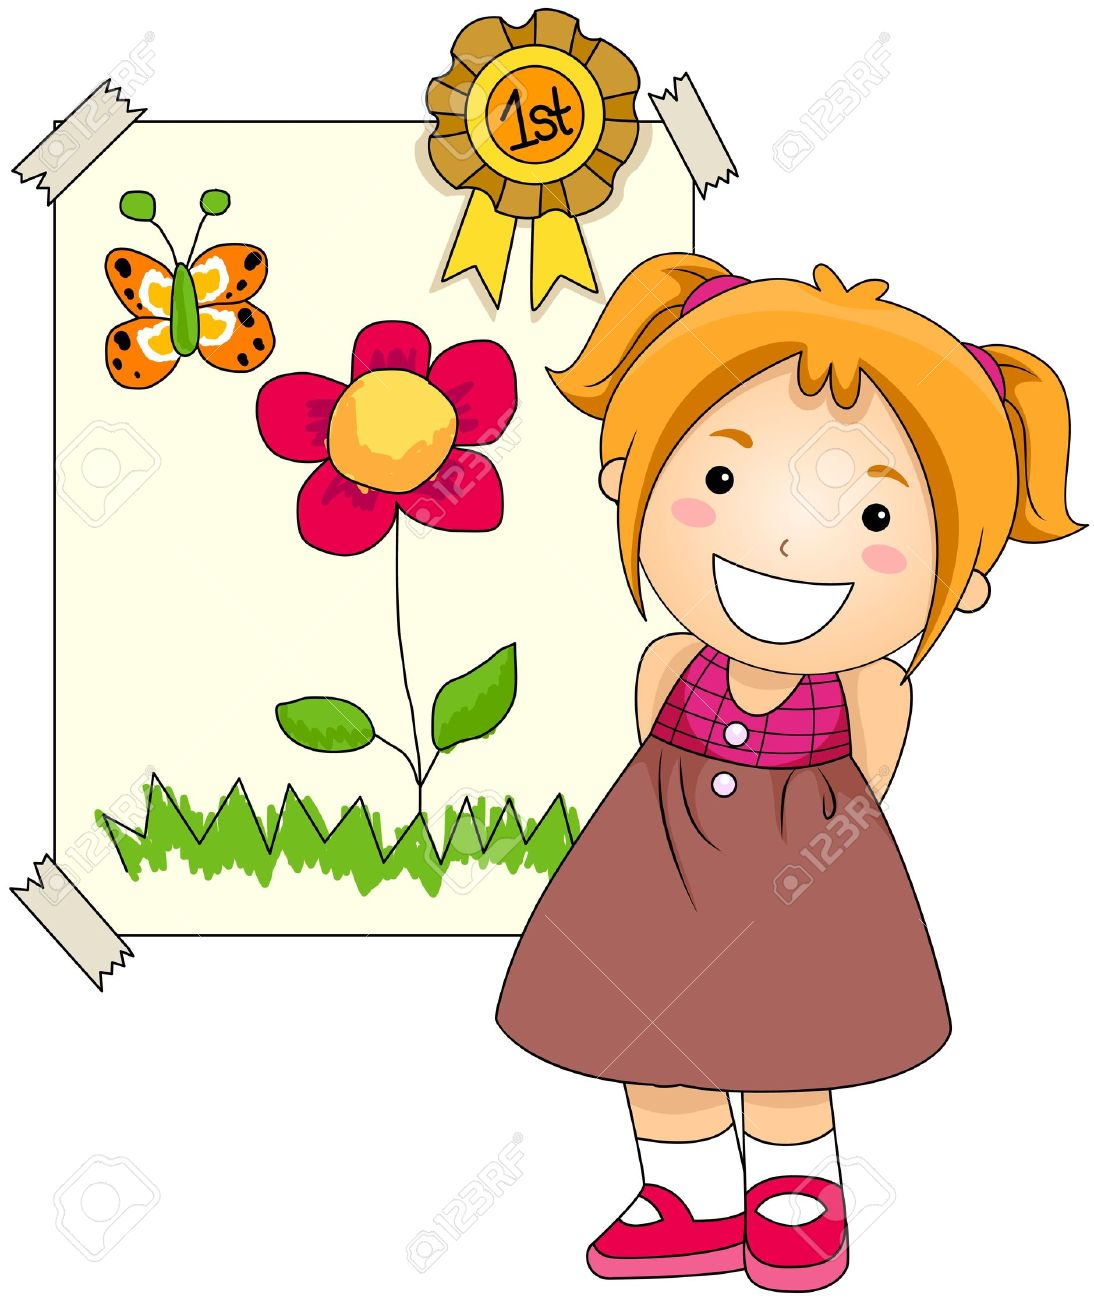 Student artwork clipart picture royalty free Student artwork clipart - ClipartFest picture royalty free